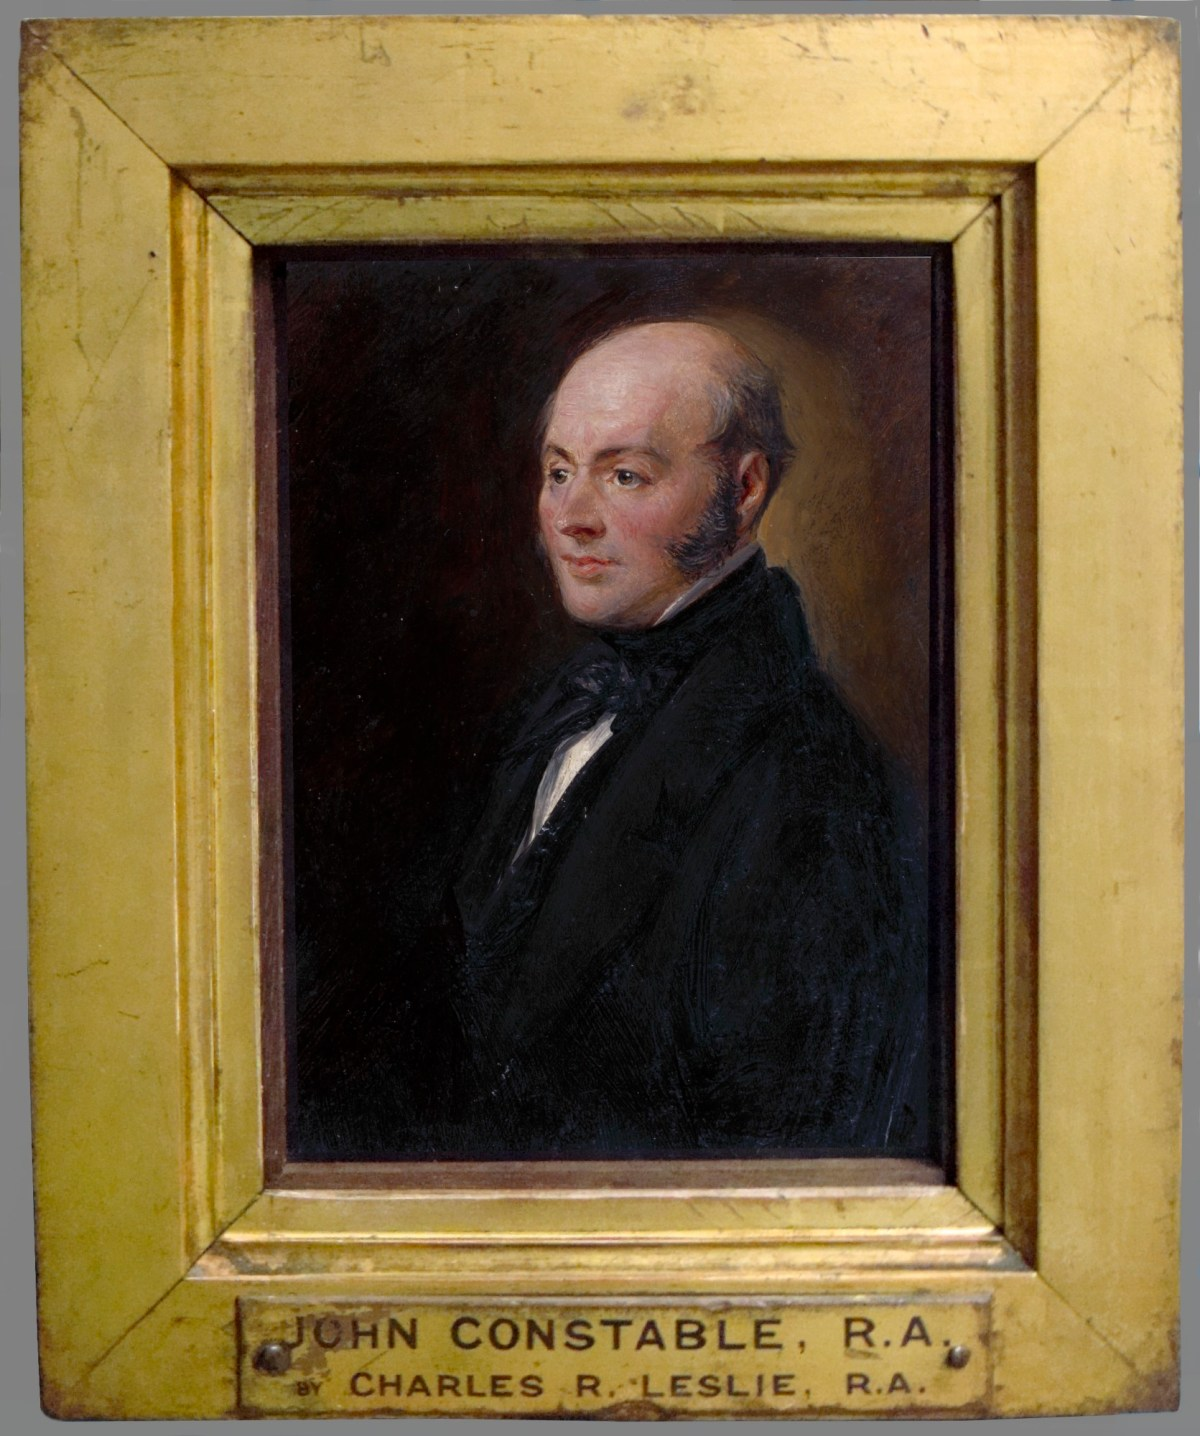 Frame For Charles Robert Leslie Ra Portrait Of John Constable R A Works Of Art Ra Collection Royal Academy Of Arts